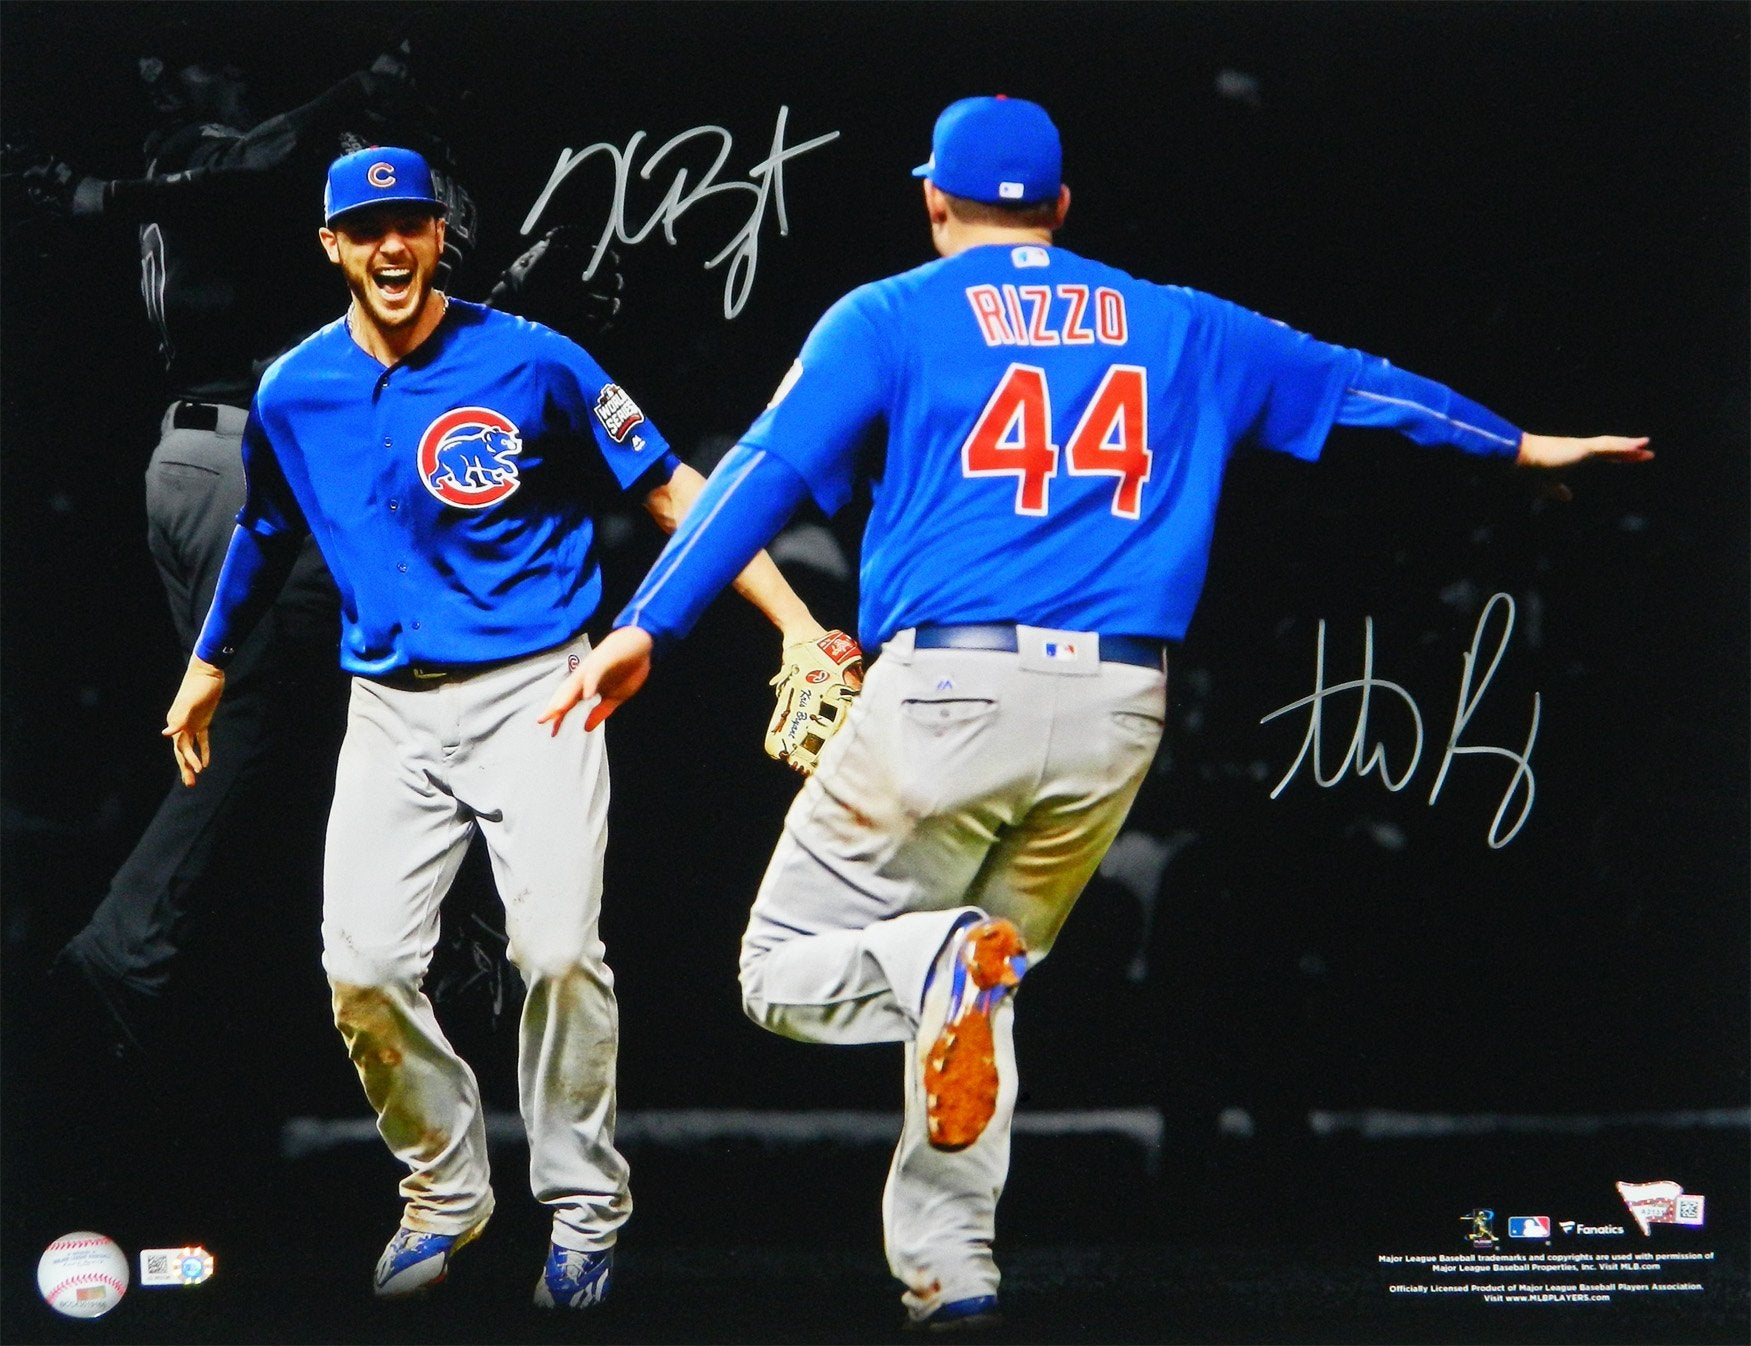 Chicago Cubs Autographs - Are you a Gambling Man? Time to bet on the Chicago Cubs…Autographs that is